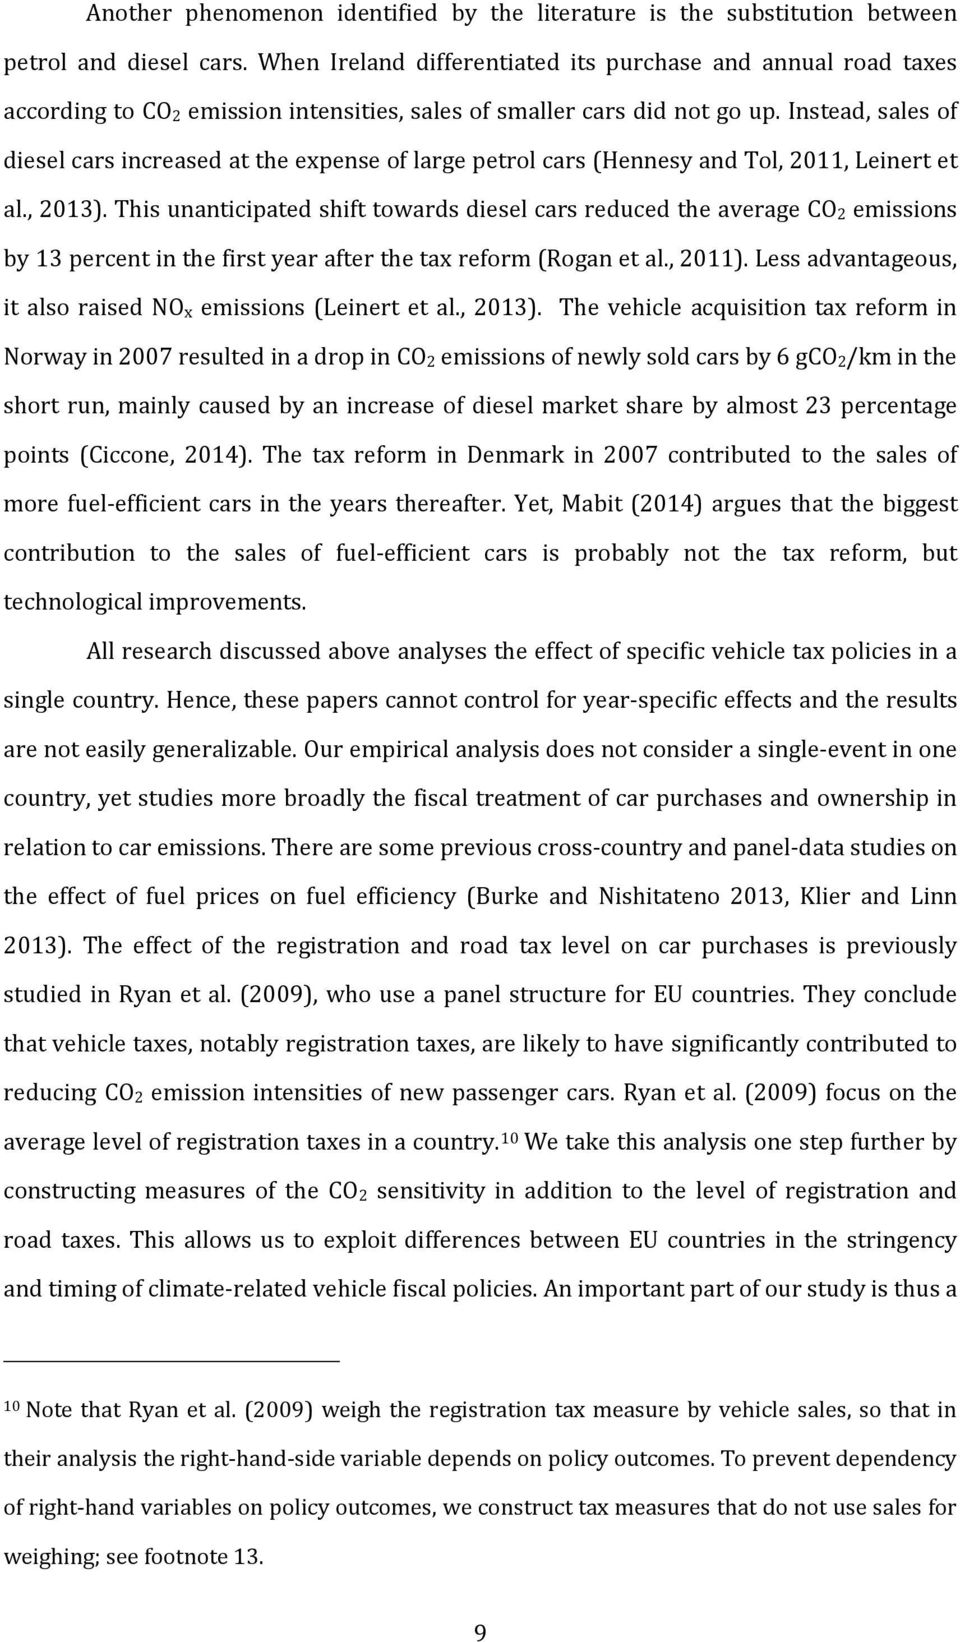 Instead, sales of diesel cars increased at the expense of large petrol cars (Hennesy and Tol, 2011, Leinert et al., 2013).